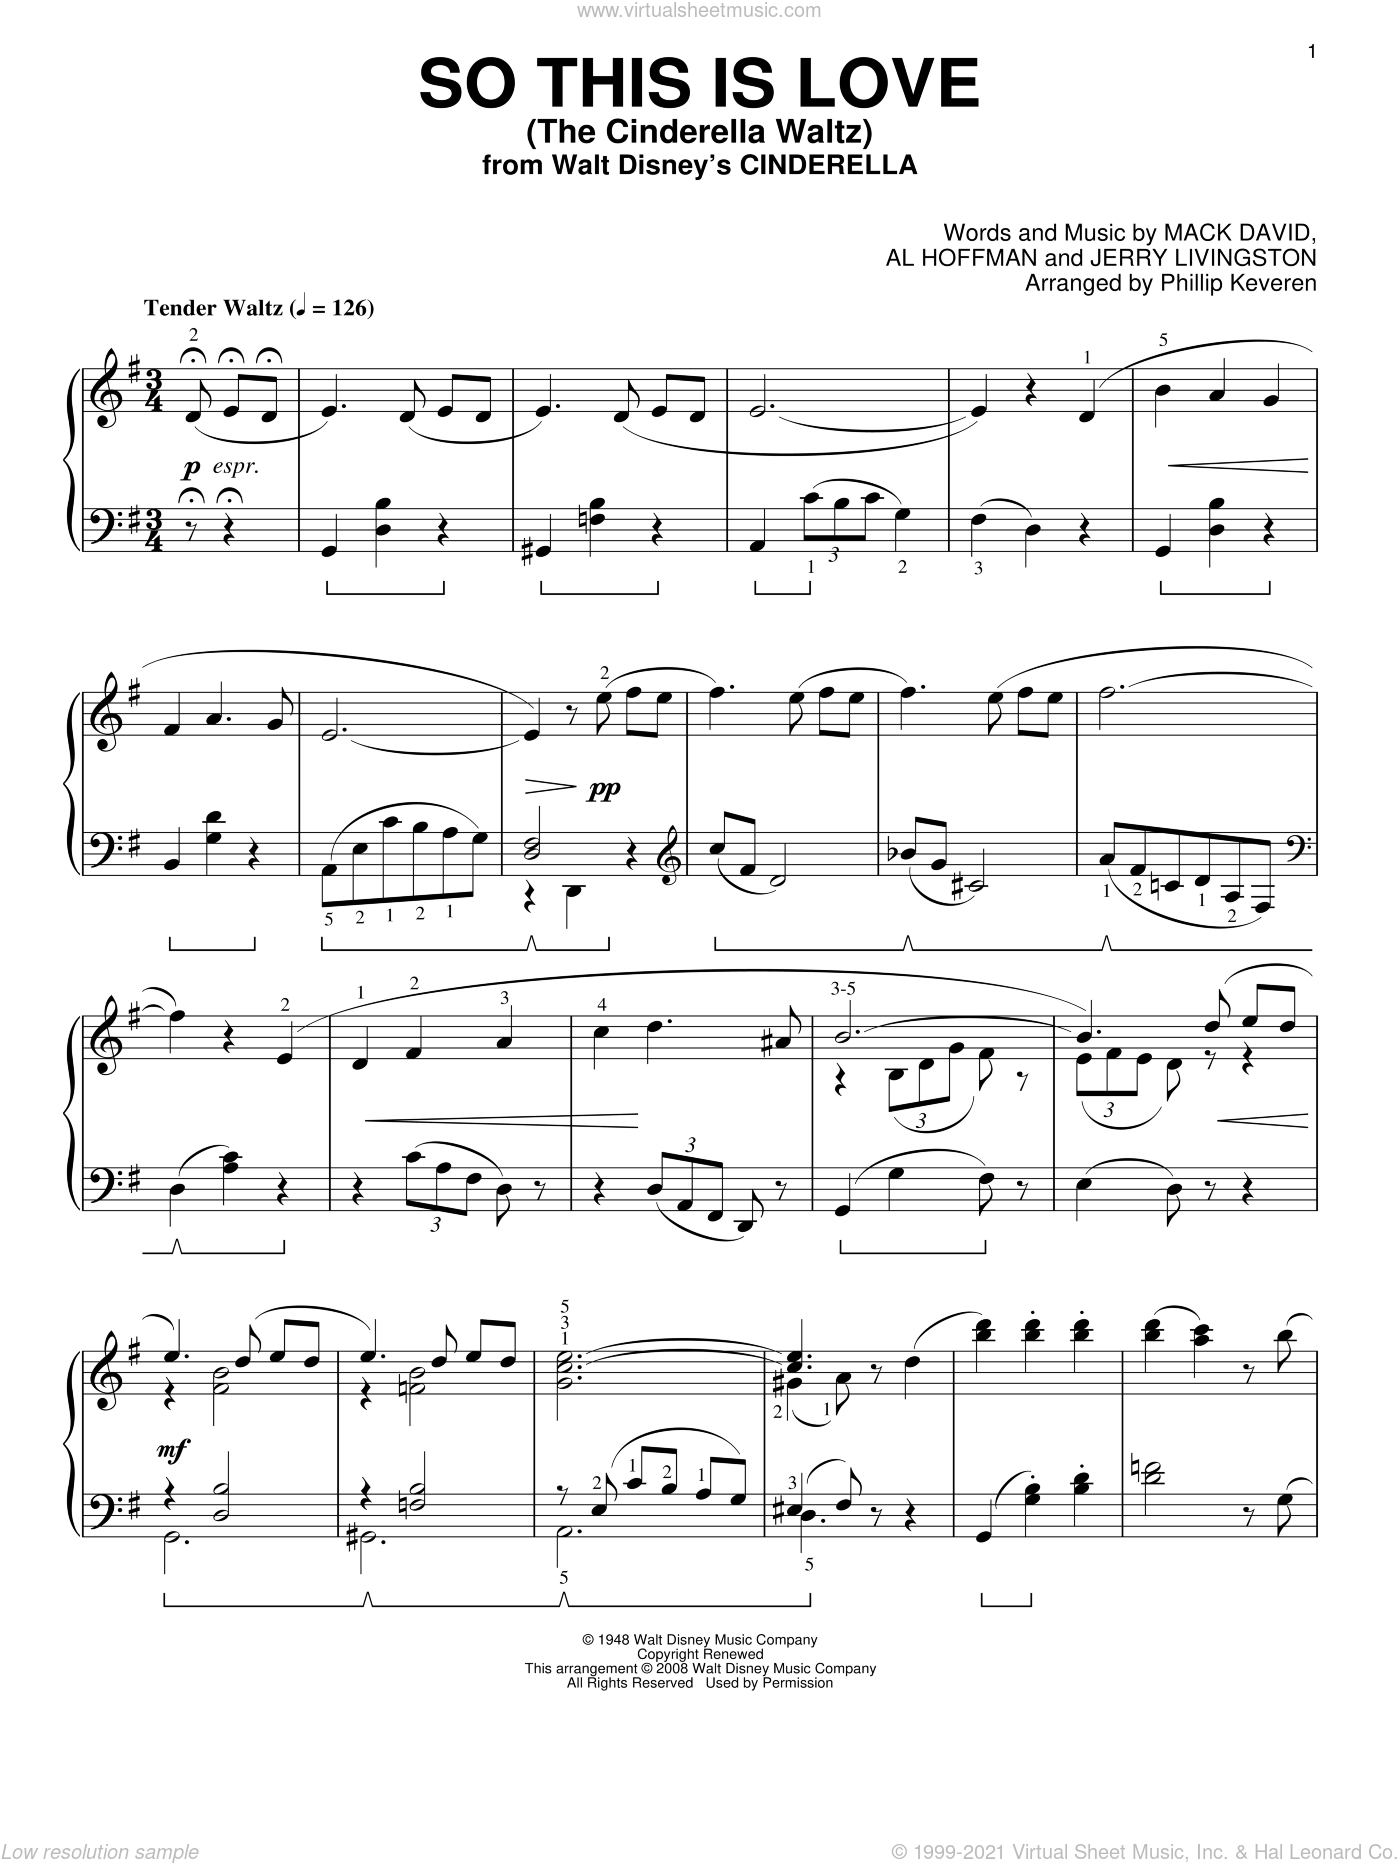 So This Is Love (The Cinderella Waltz) sheet music for piano solo by Mack David, Phillip Keveren, Al Hoffman and Jerry Livingston, intermediate skill level